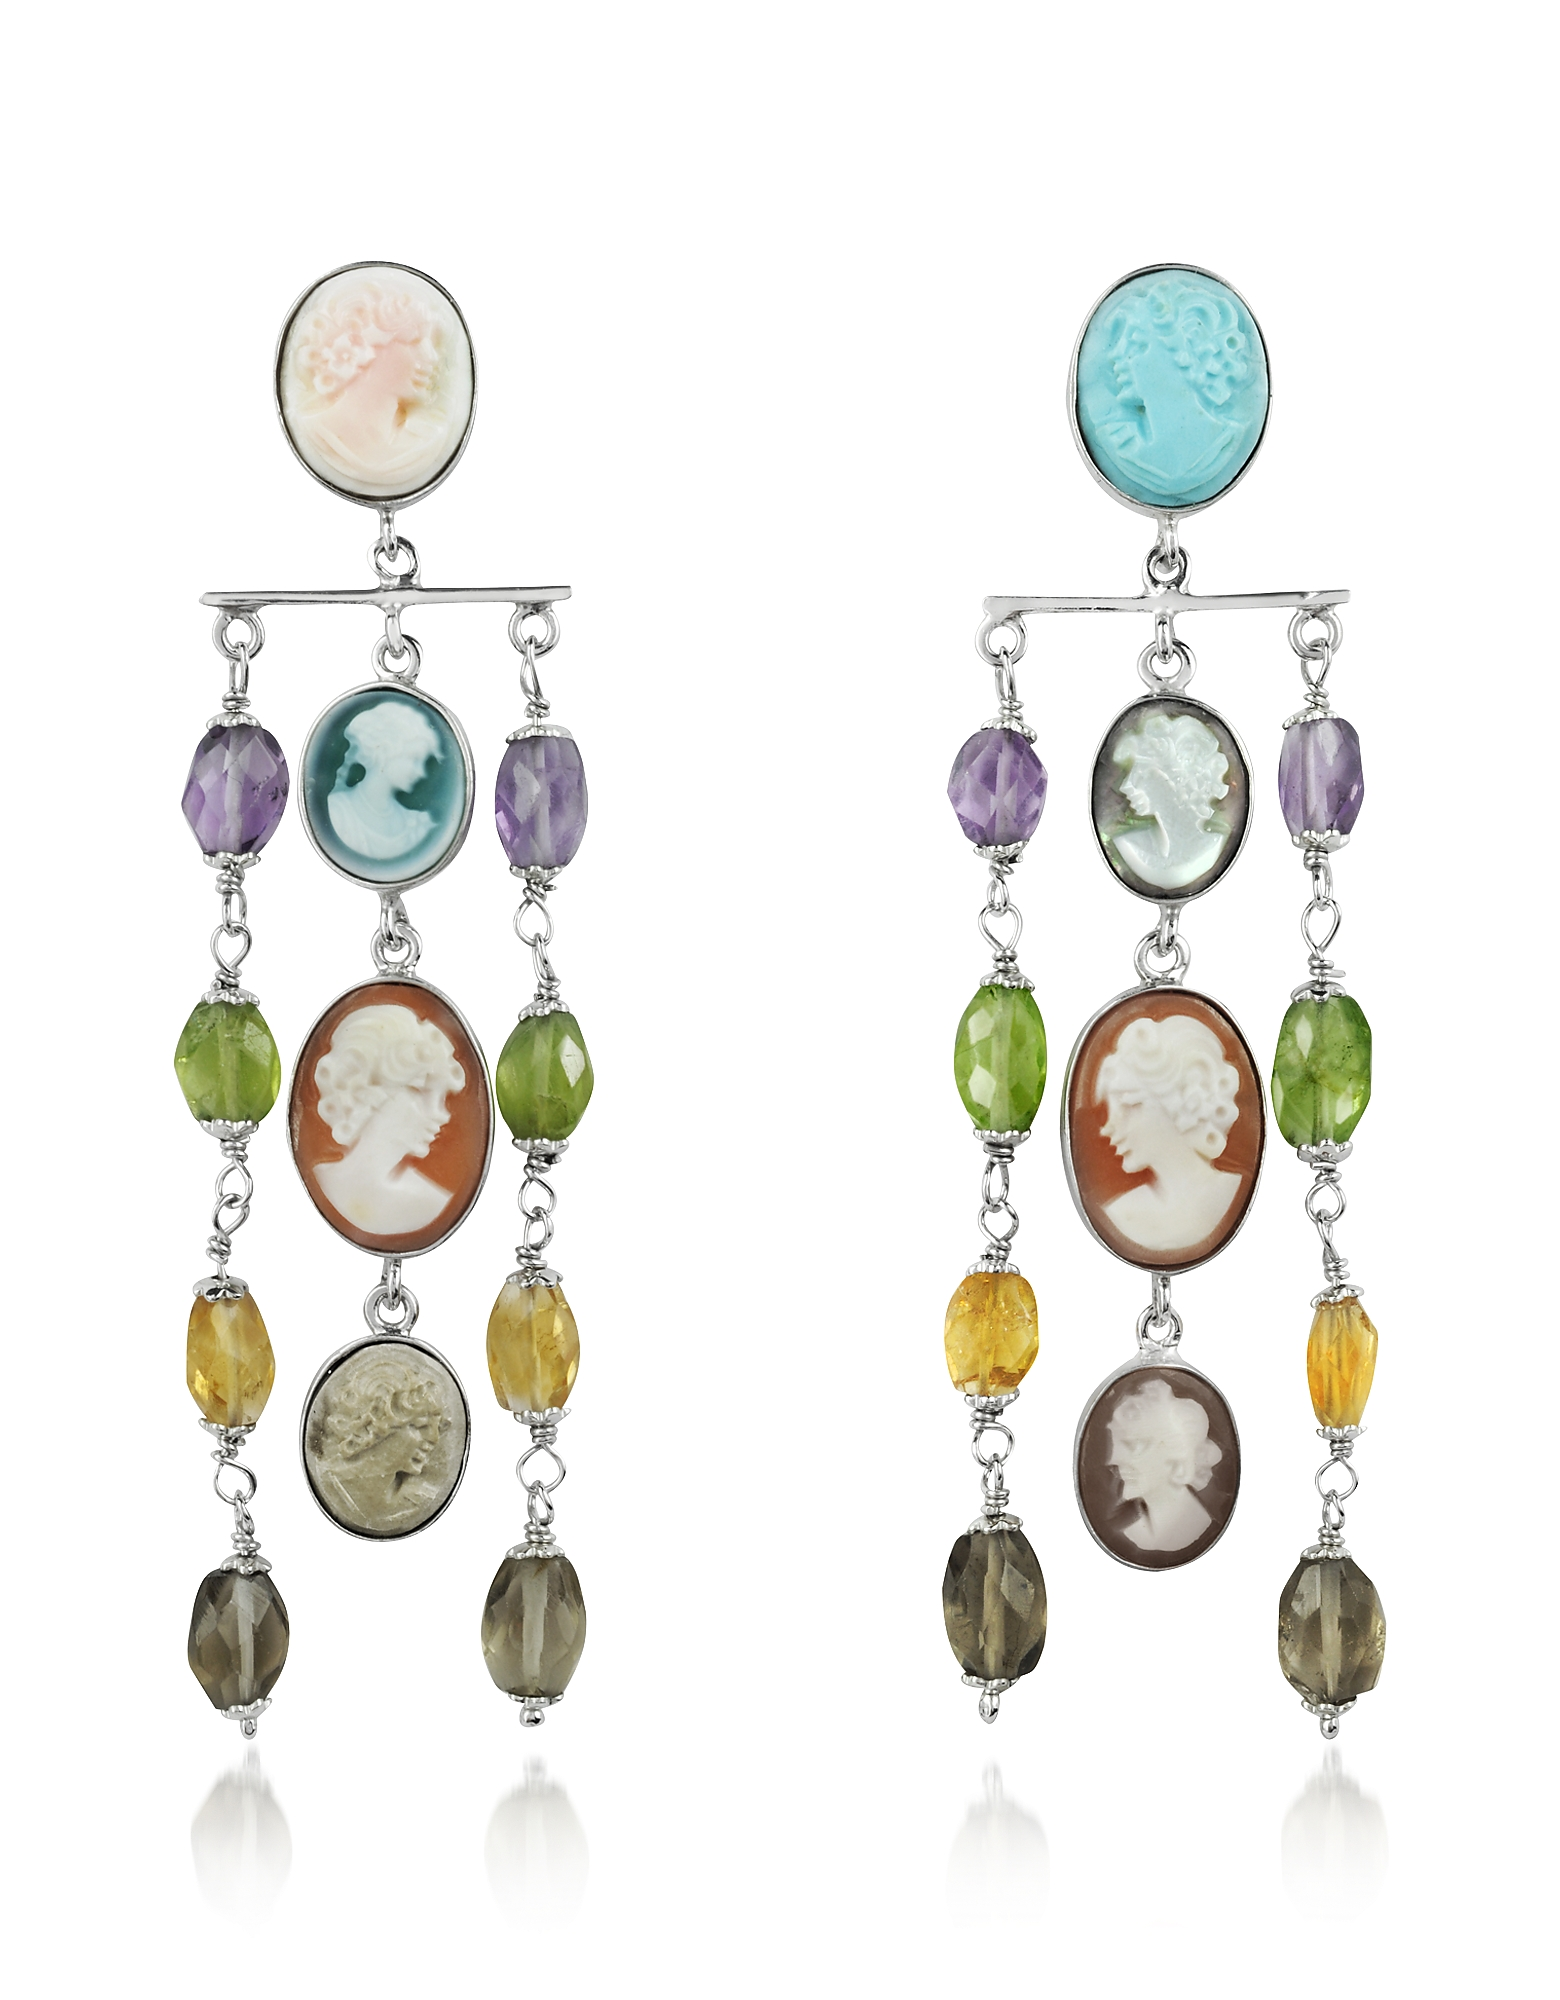 Mia & Beverly Cameo, Cameo Cascade Earrings